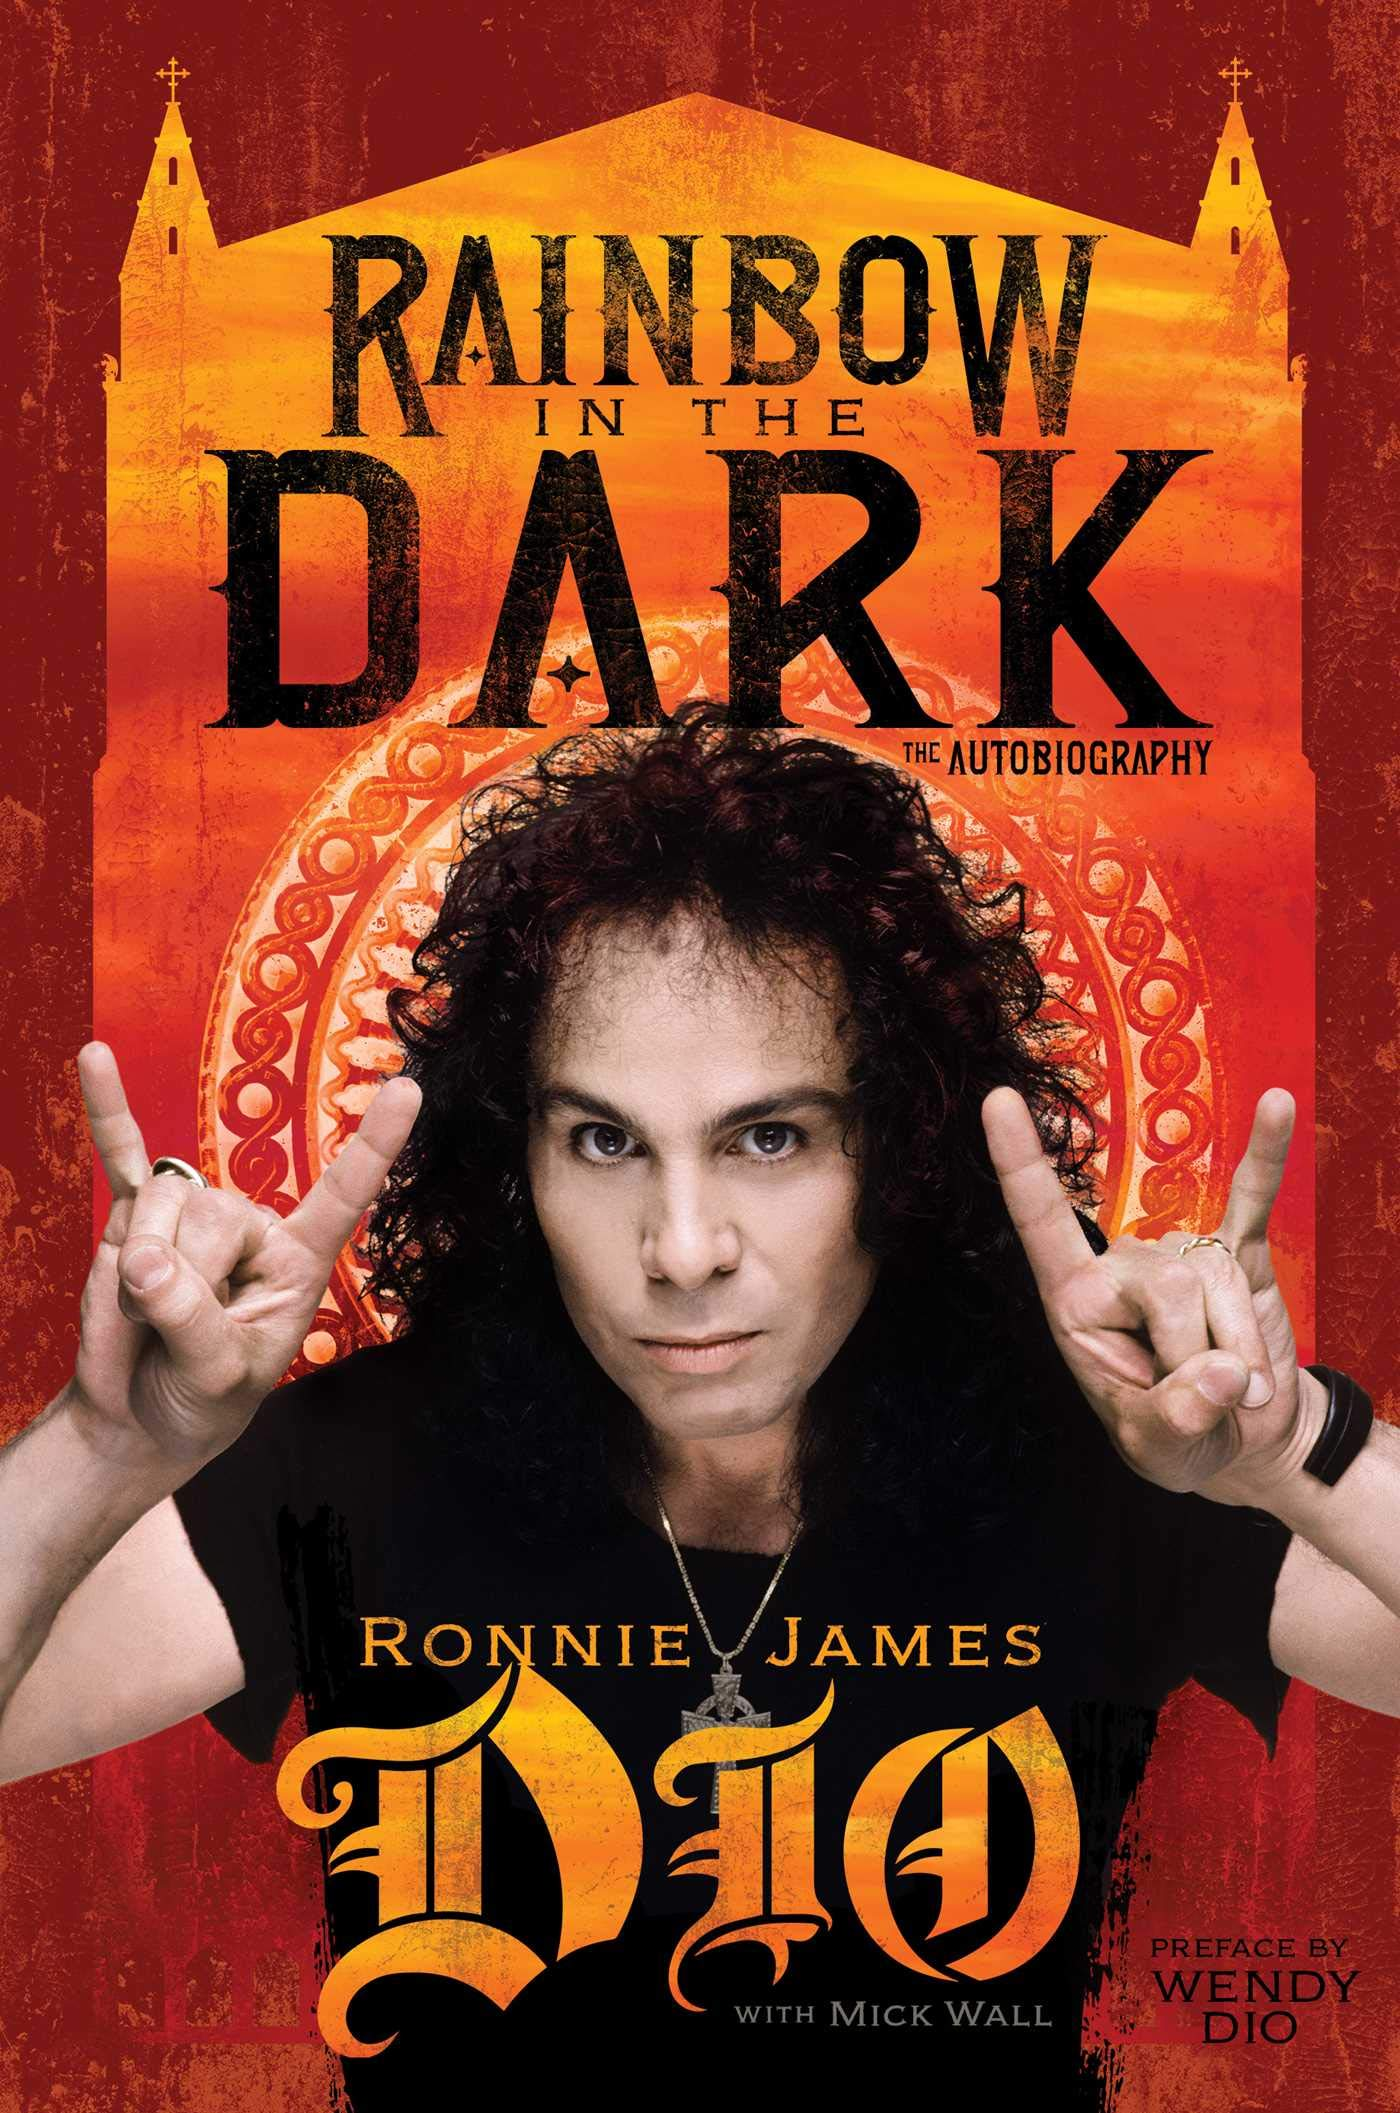 Ronnie James Dio's autobiography secures posthumous release later this year